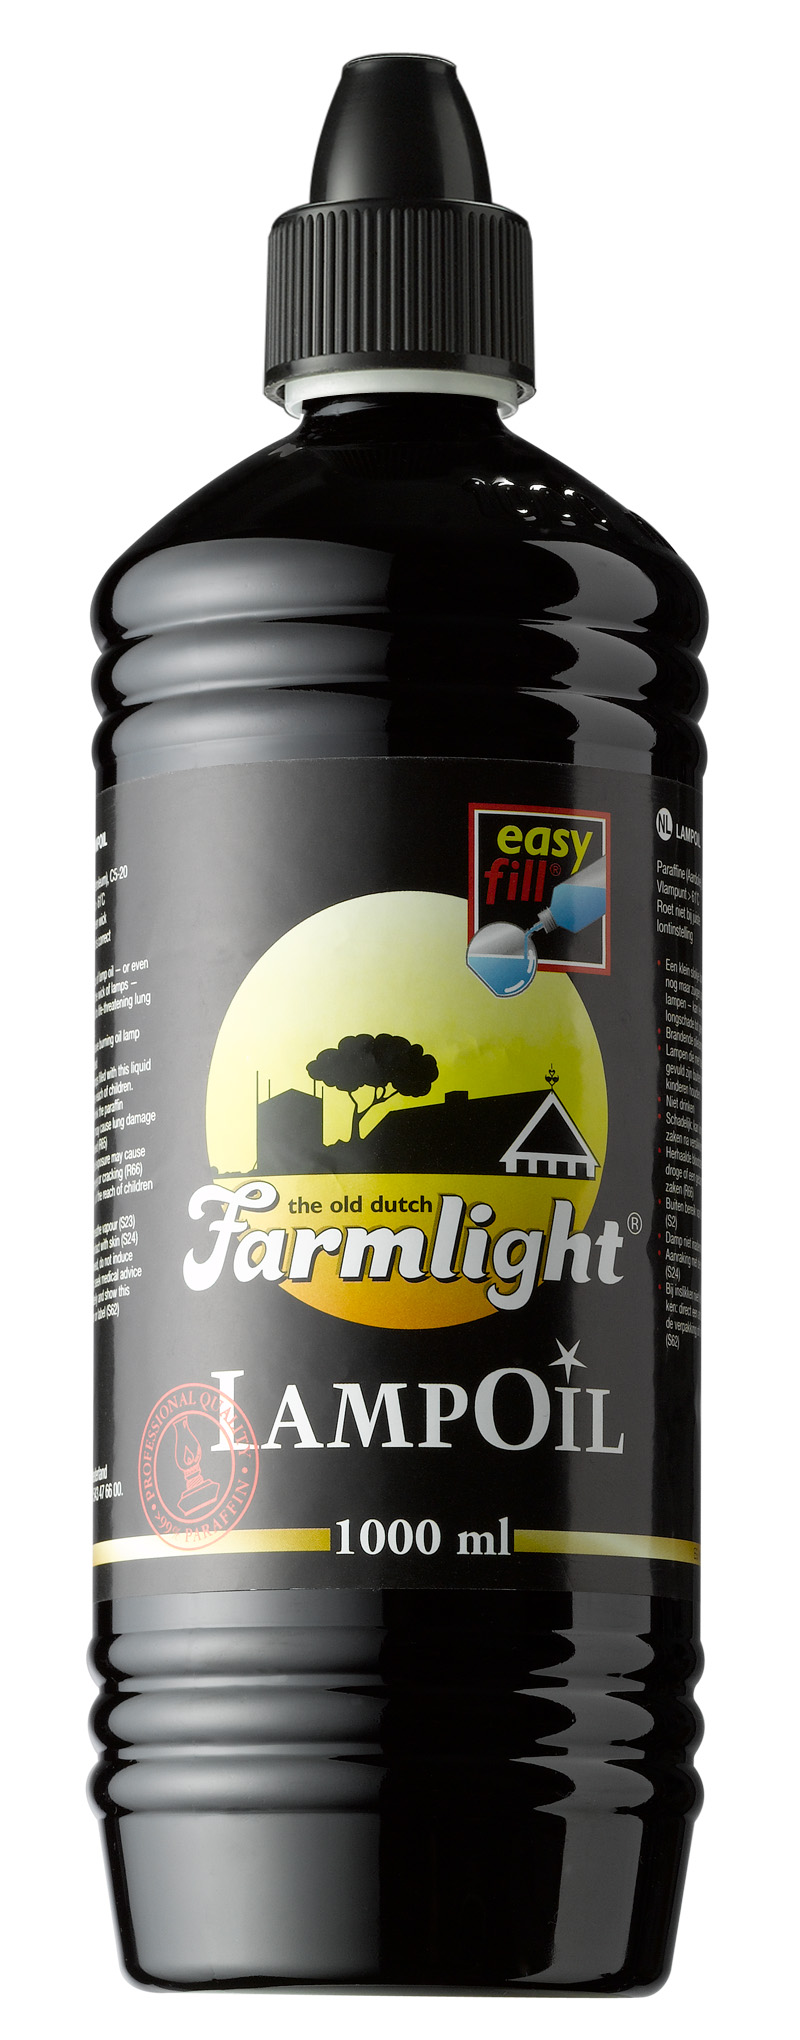 00754 - Farmlight Lampenöl -farblos- 1000 ml